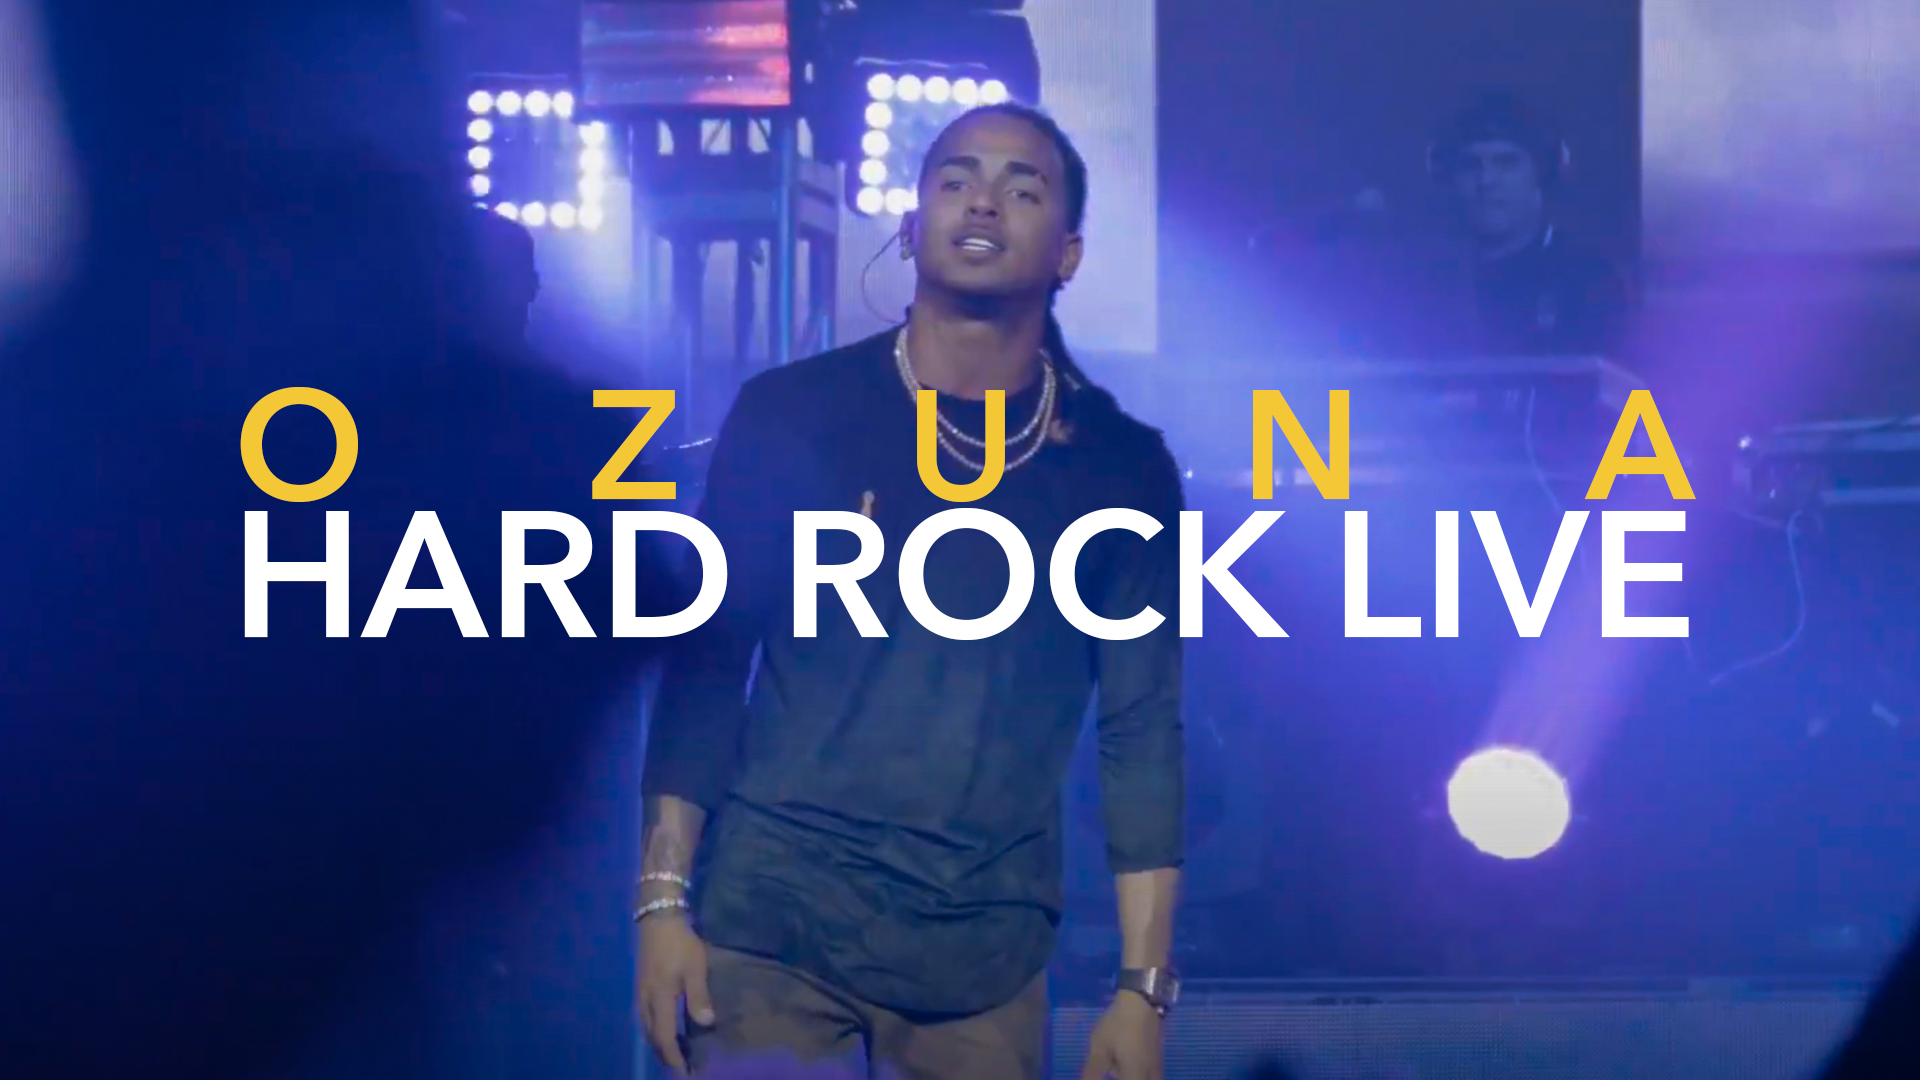 OZUNA EN LA INTIMIDAD (TRAP CARTEL) HARD ROCK LIVE MIAMI